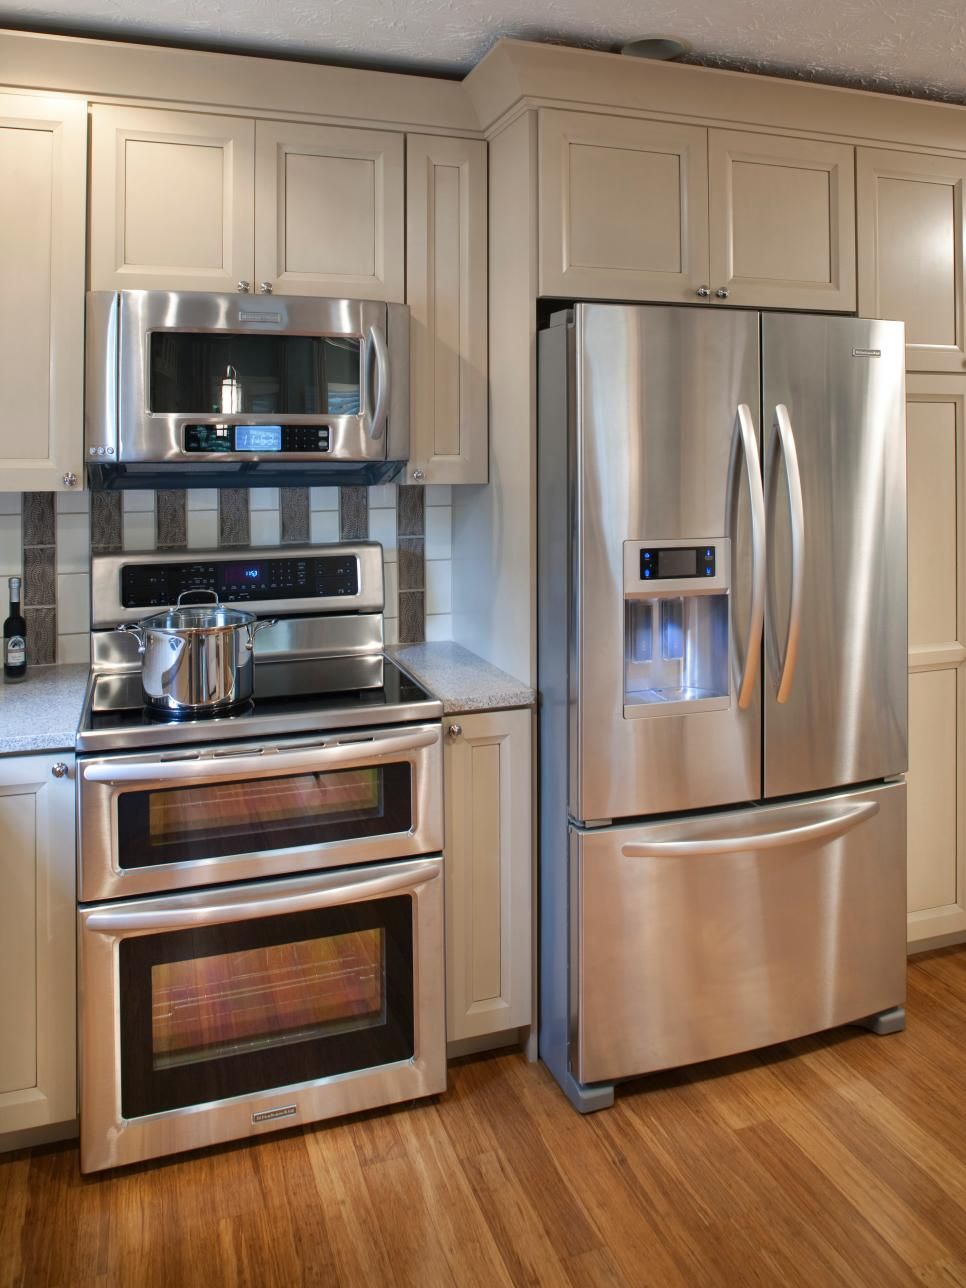 Neutral Kitchen Cabinets Provide Convenient Storage And A Clean Facade In This Stainless Steel